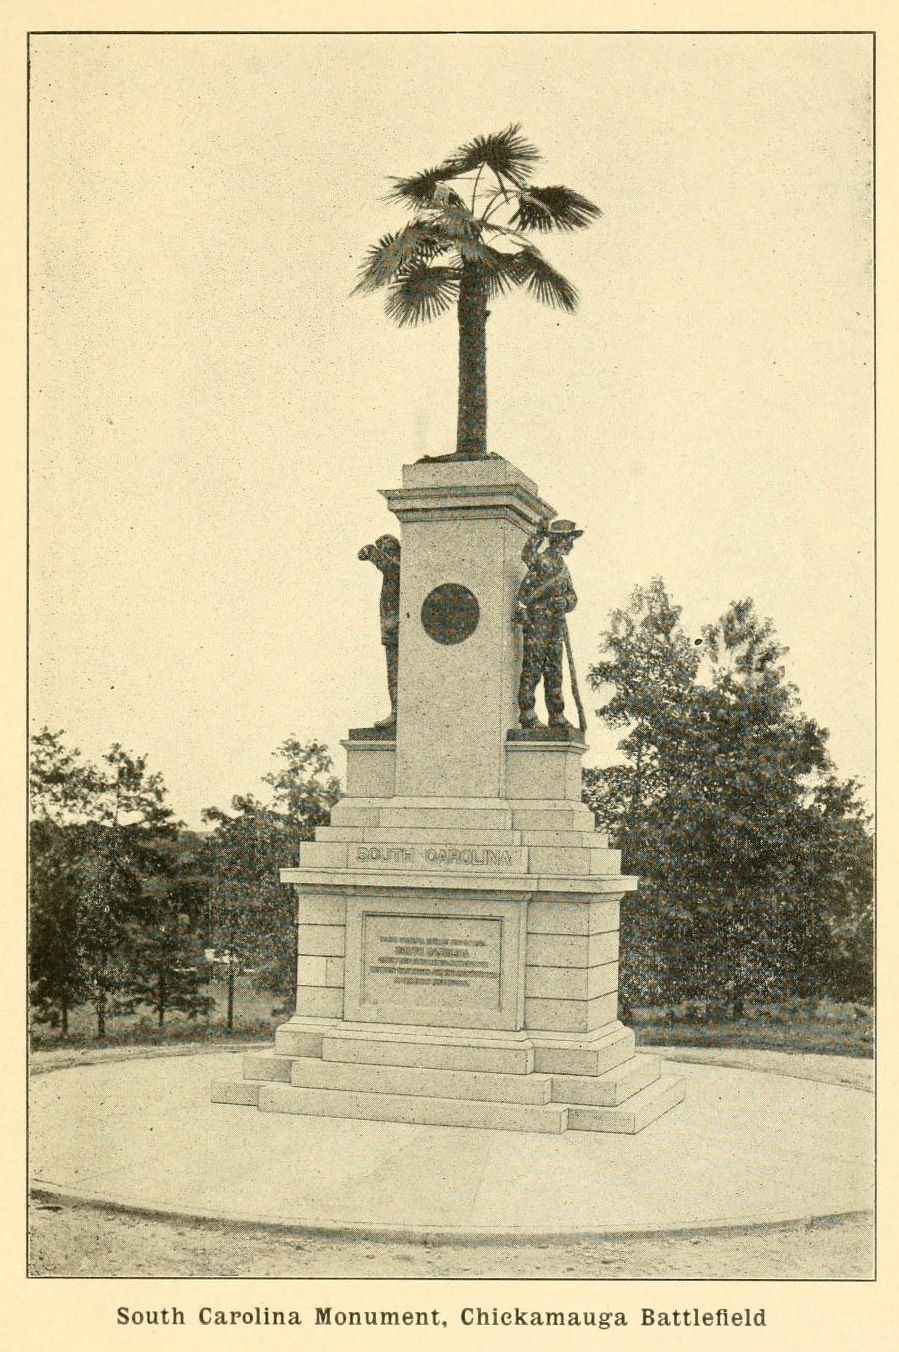 South Carolina State Monument